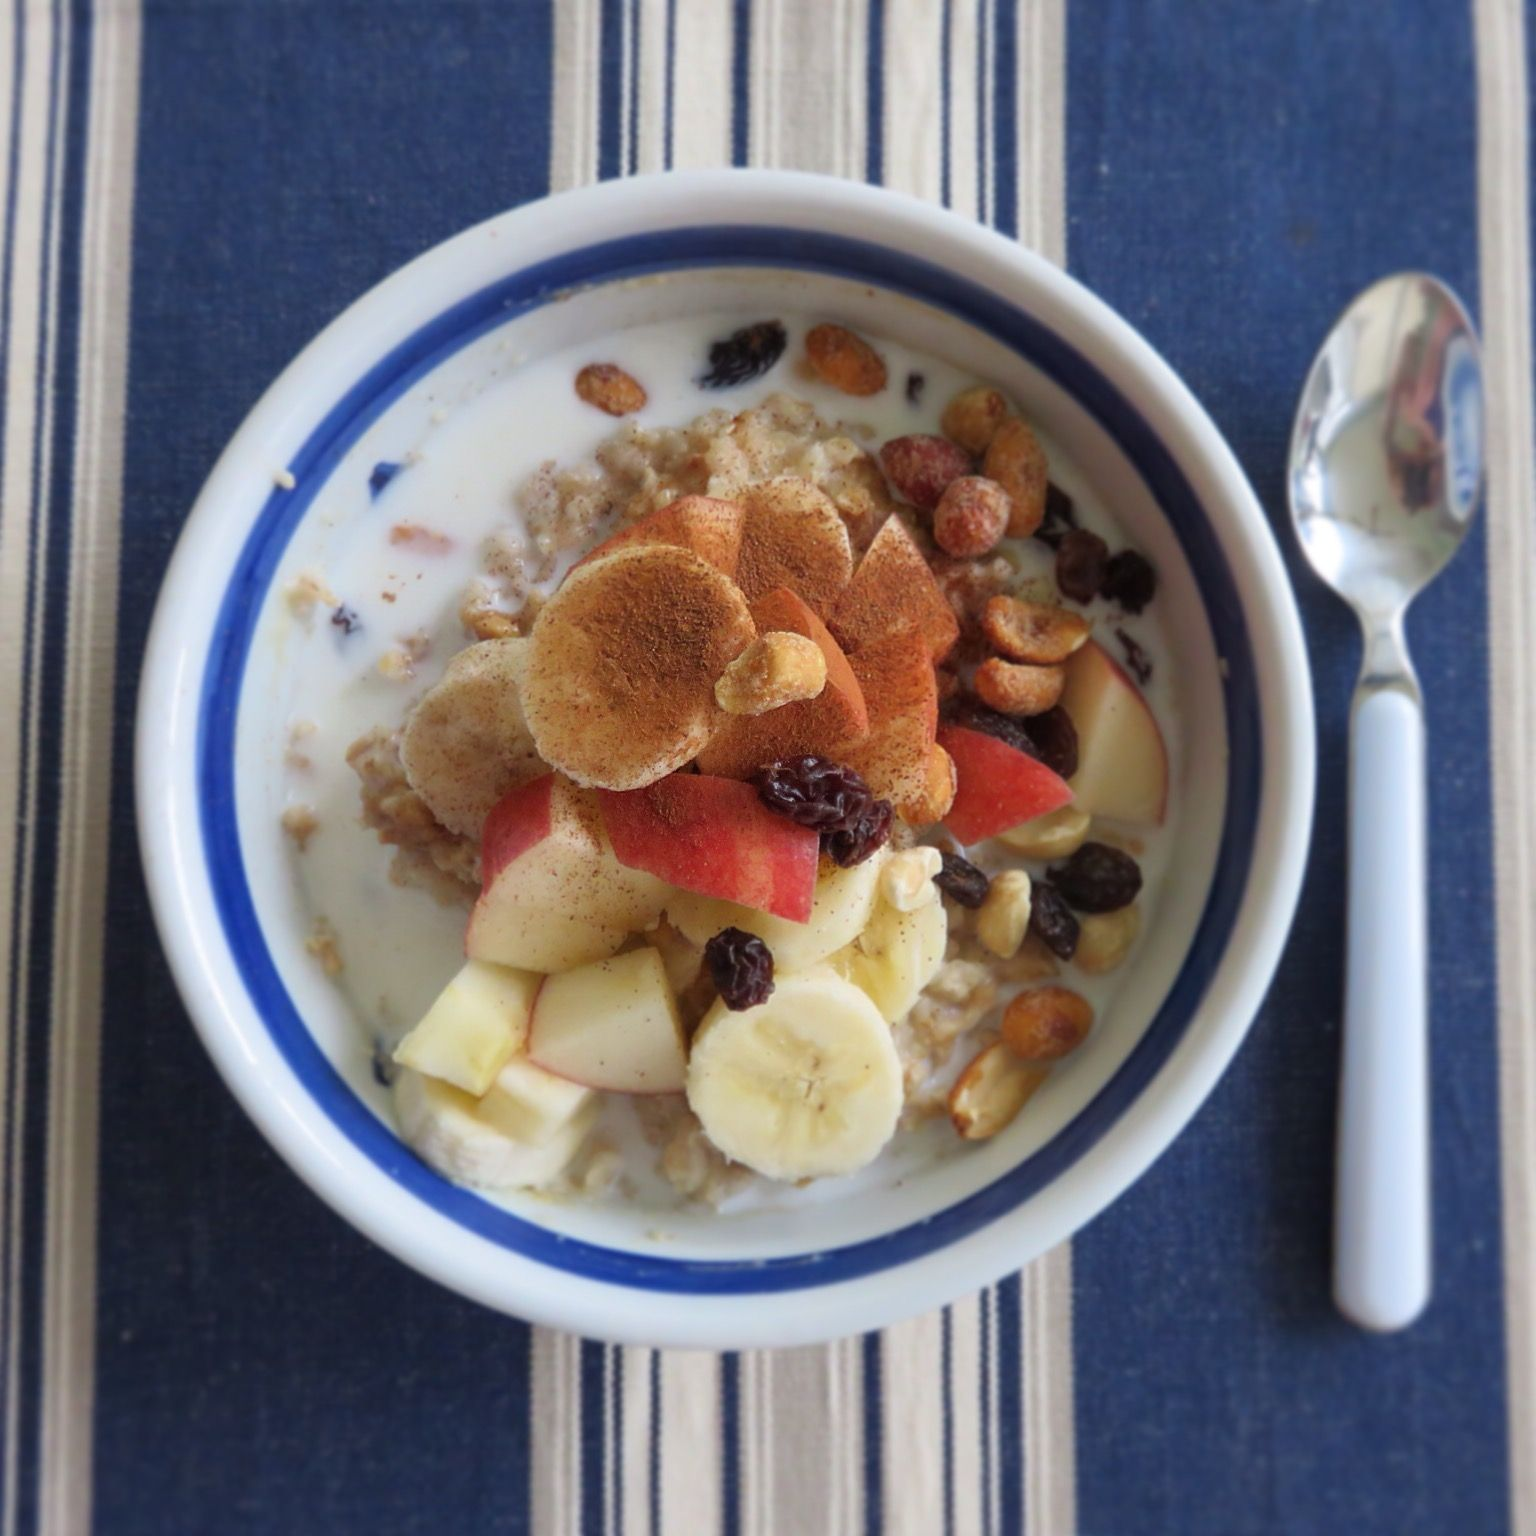 quaker oats how to cook in microwave